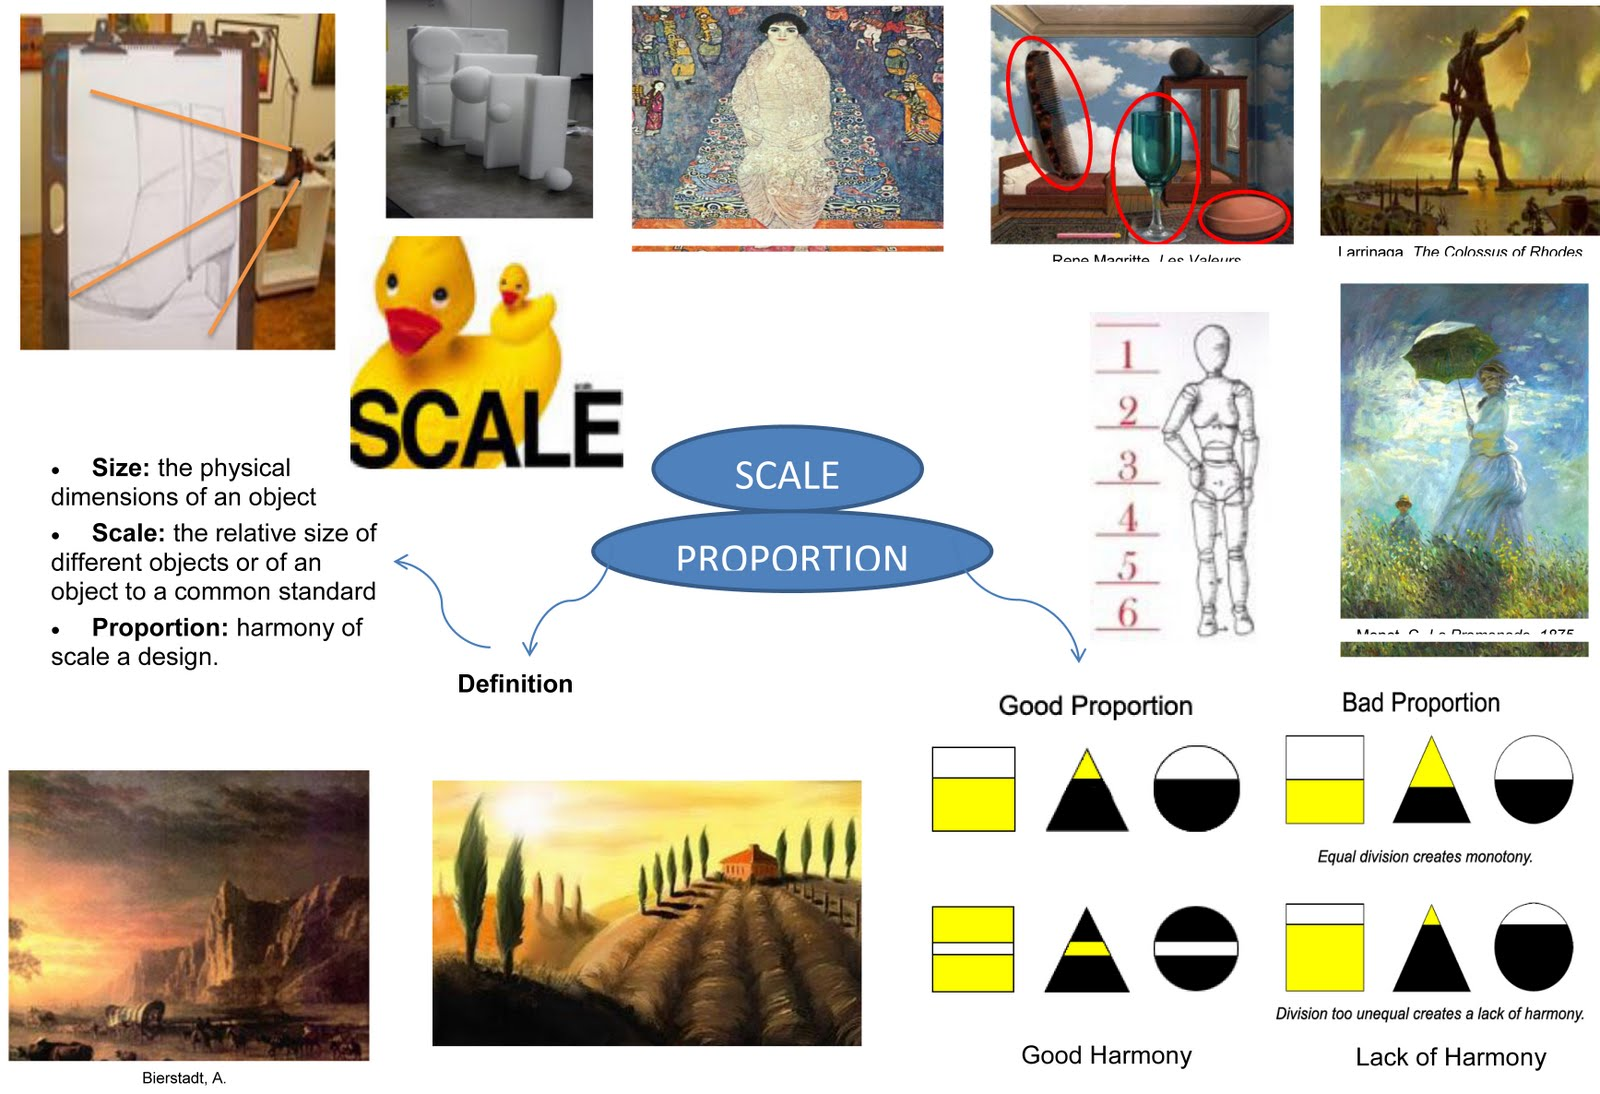 History of art and design element of art and design - Scale and proportion in art ...